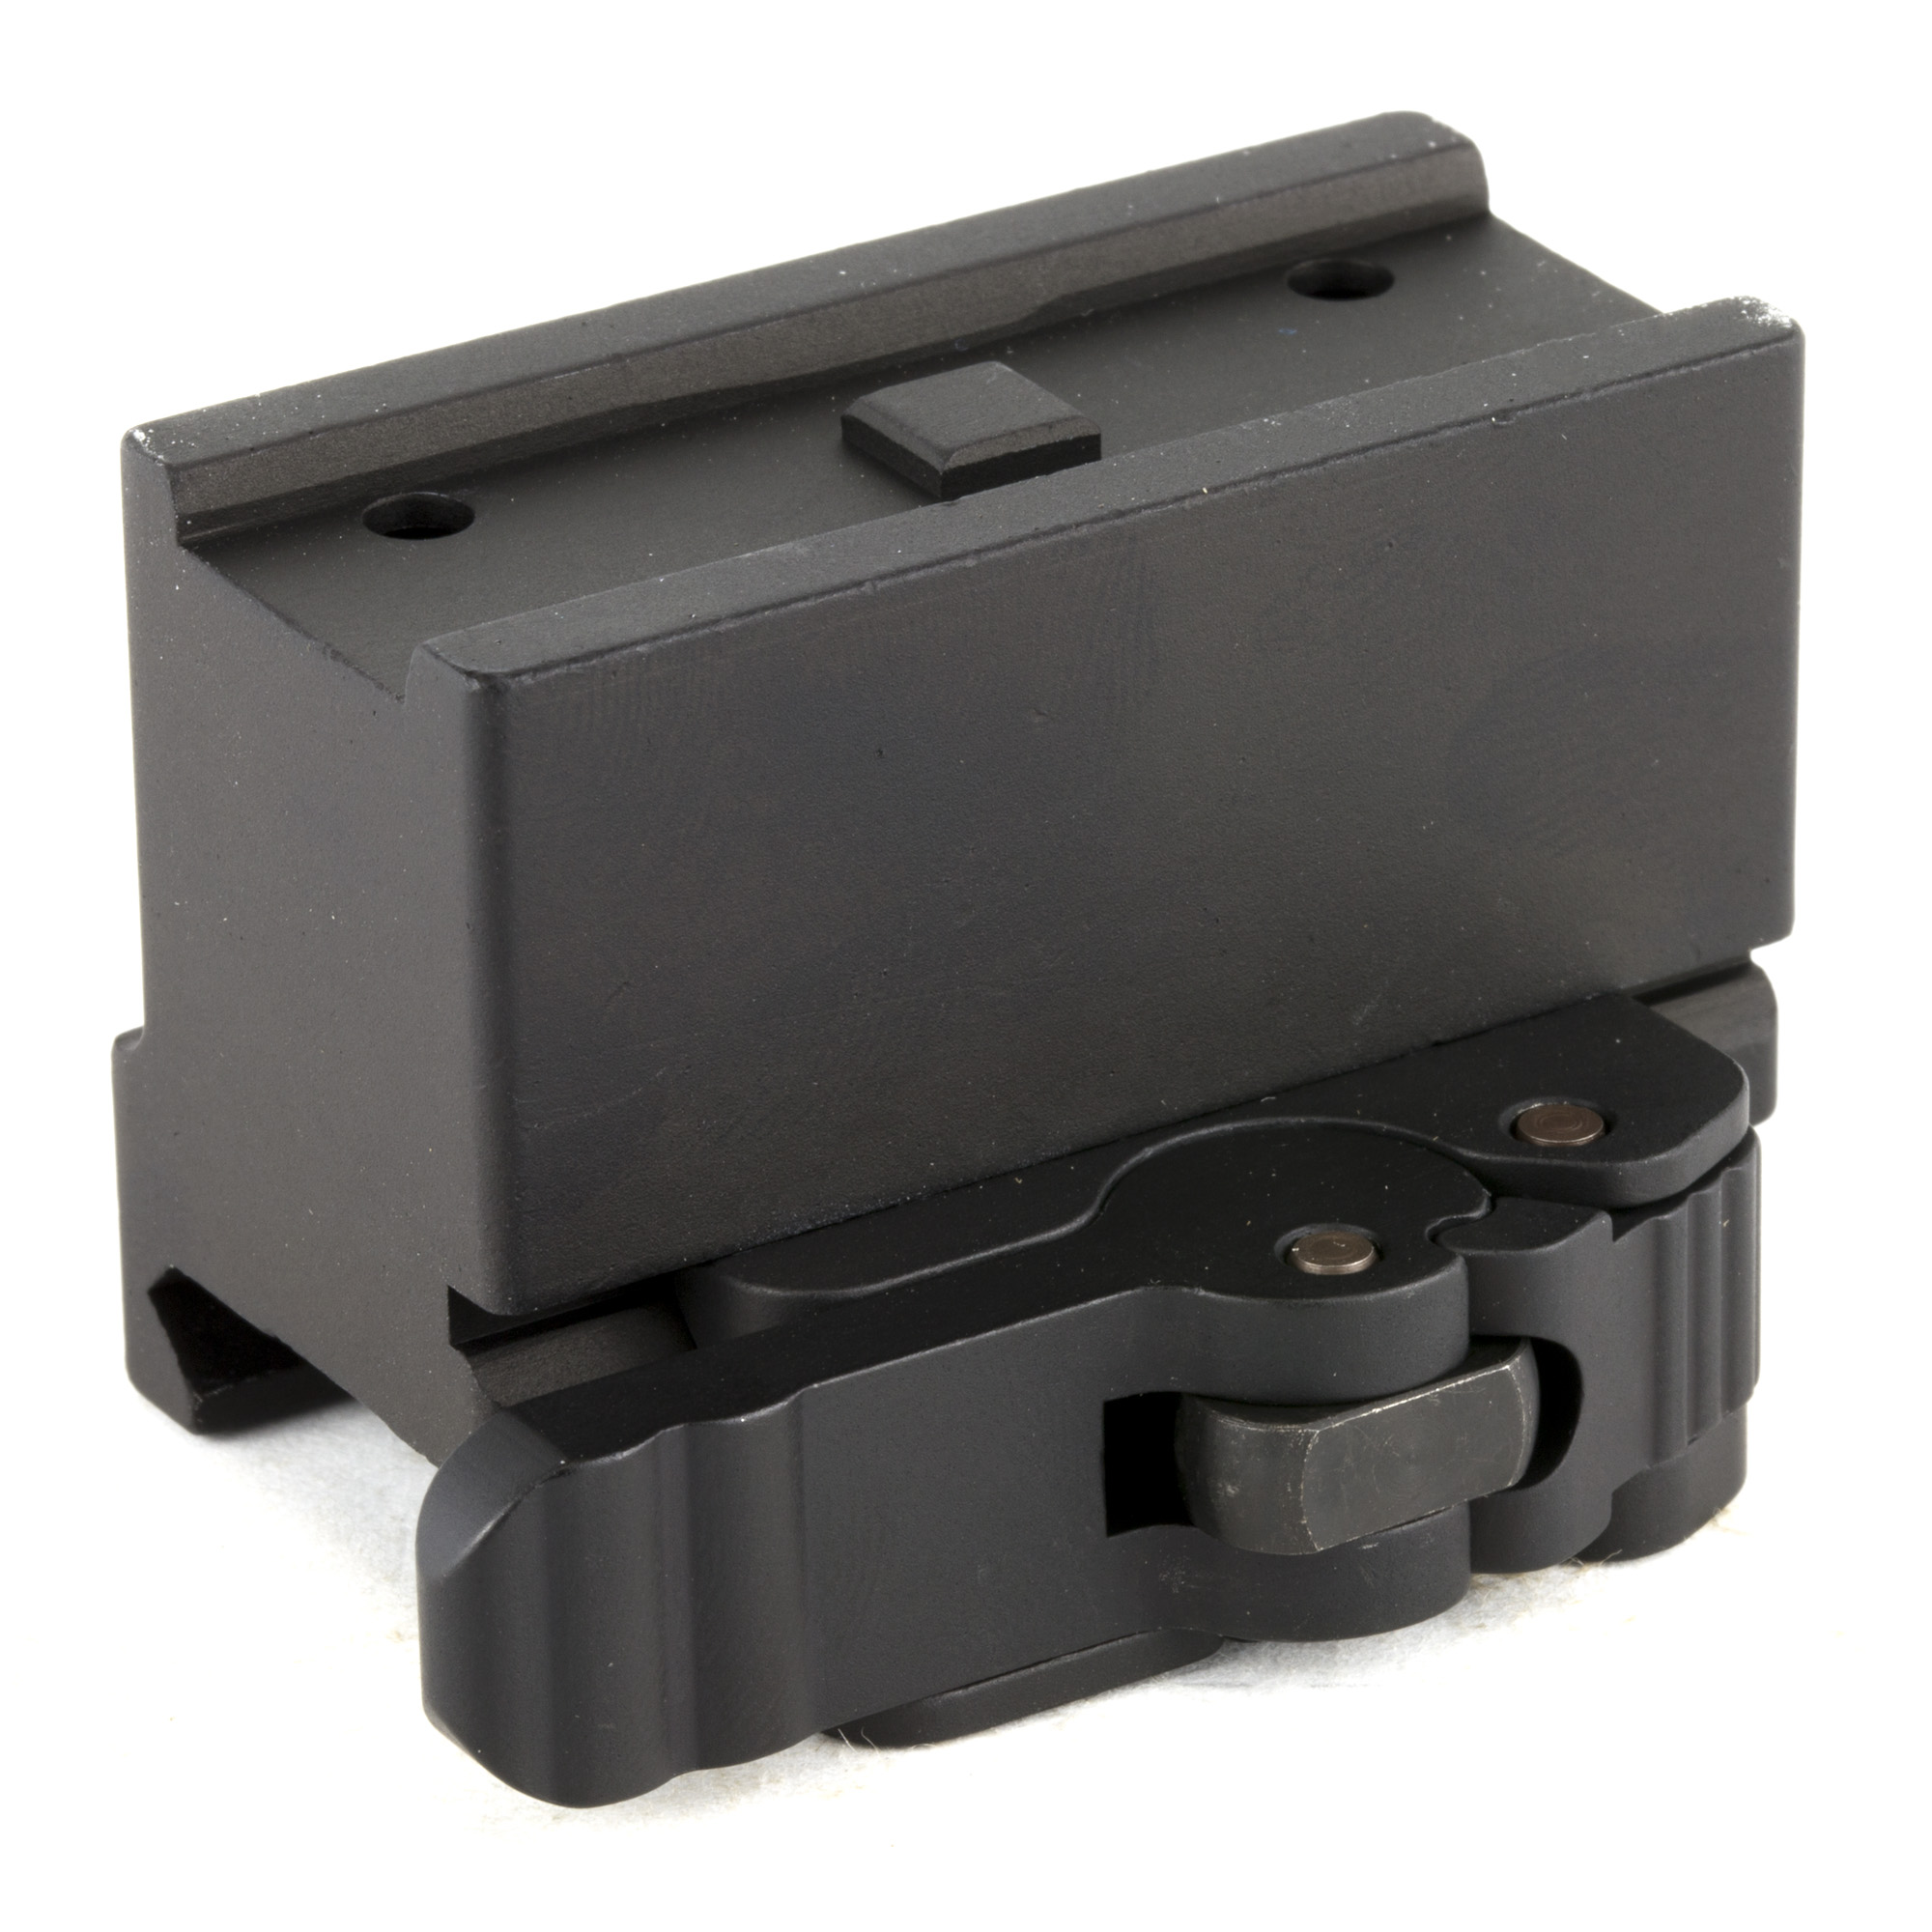 Lower 1/3 Aimpoint T1 QD mount made by Midwest Industries.